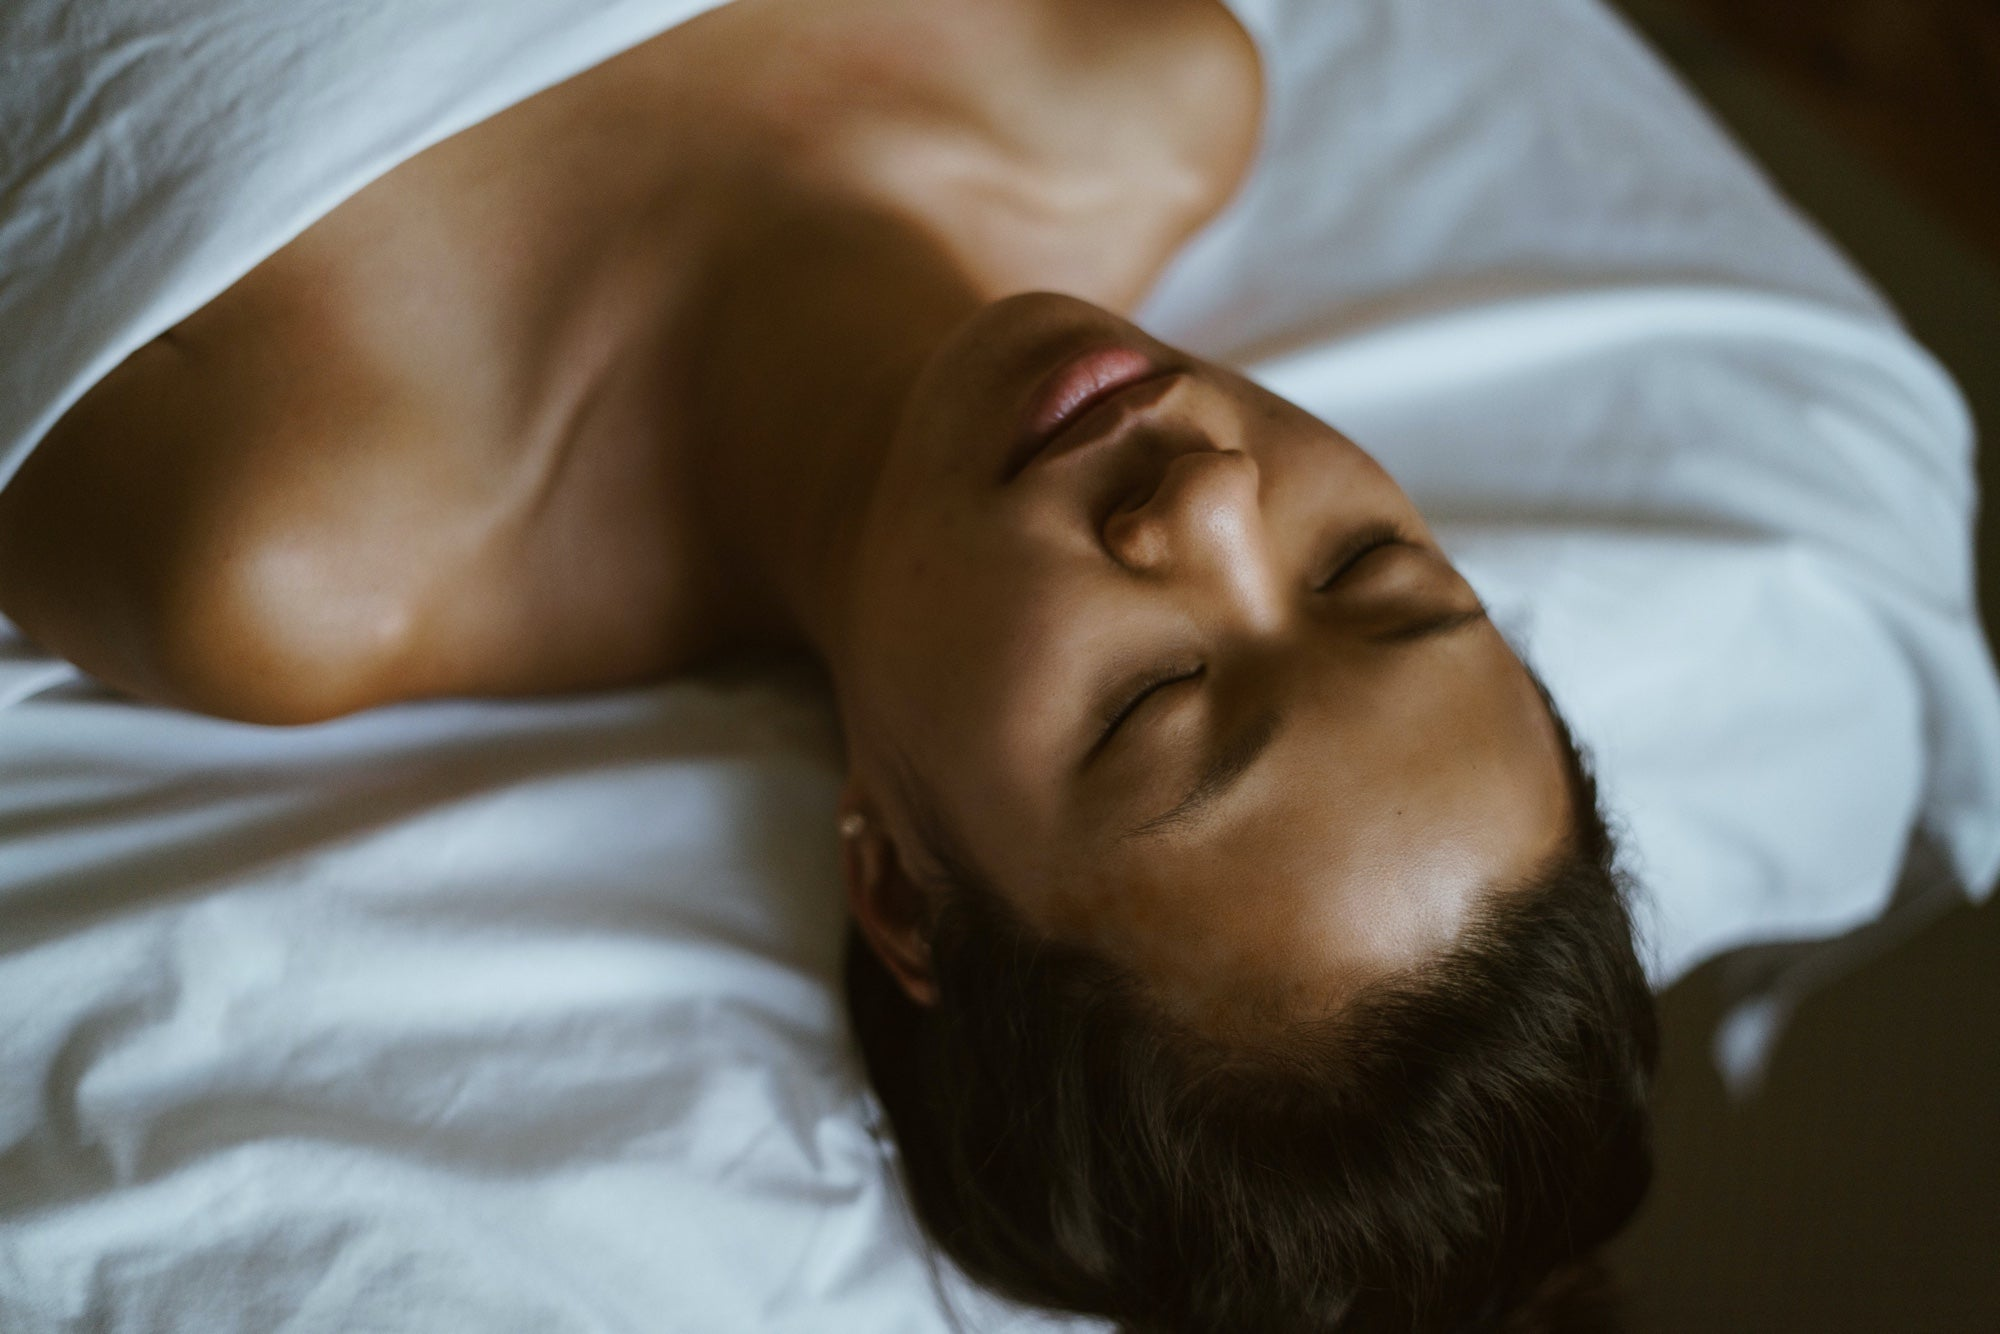 A woman lies on a massage table with her eyes closed